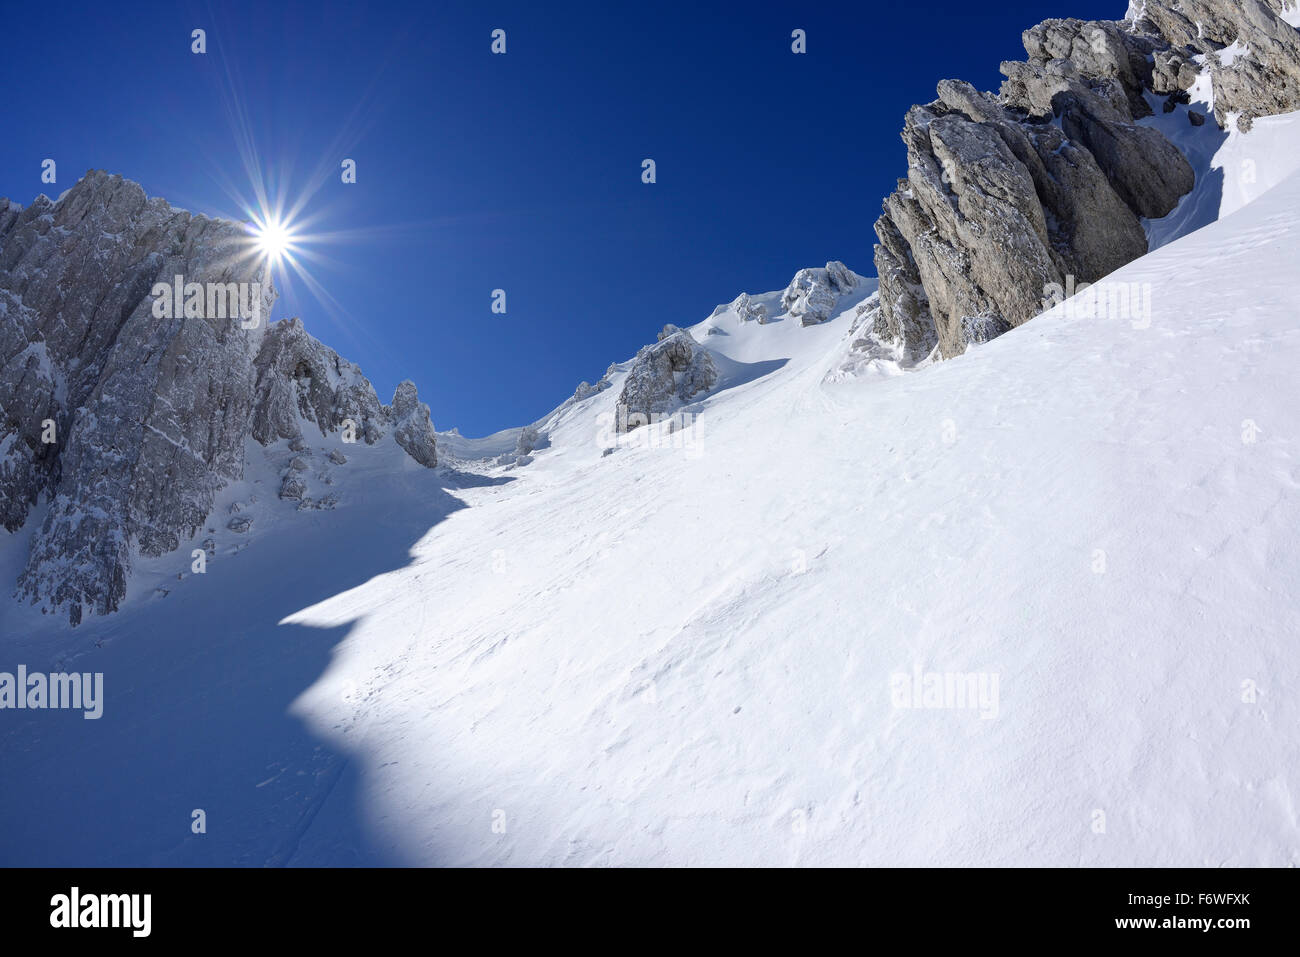 Sun gleaming over the snow-covered cirque at Monte Sirente, Valle Lupara, Monte Sirente, Abruzzi, Apennines, l' - Stock Image